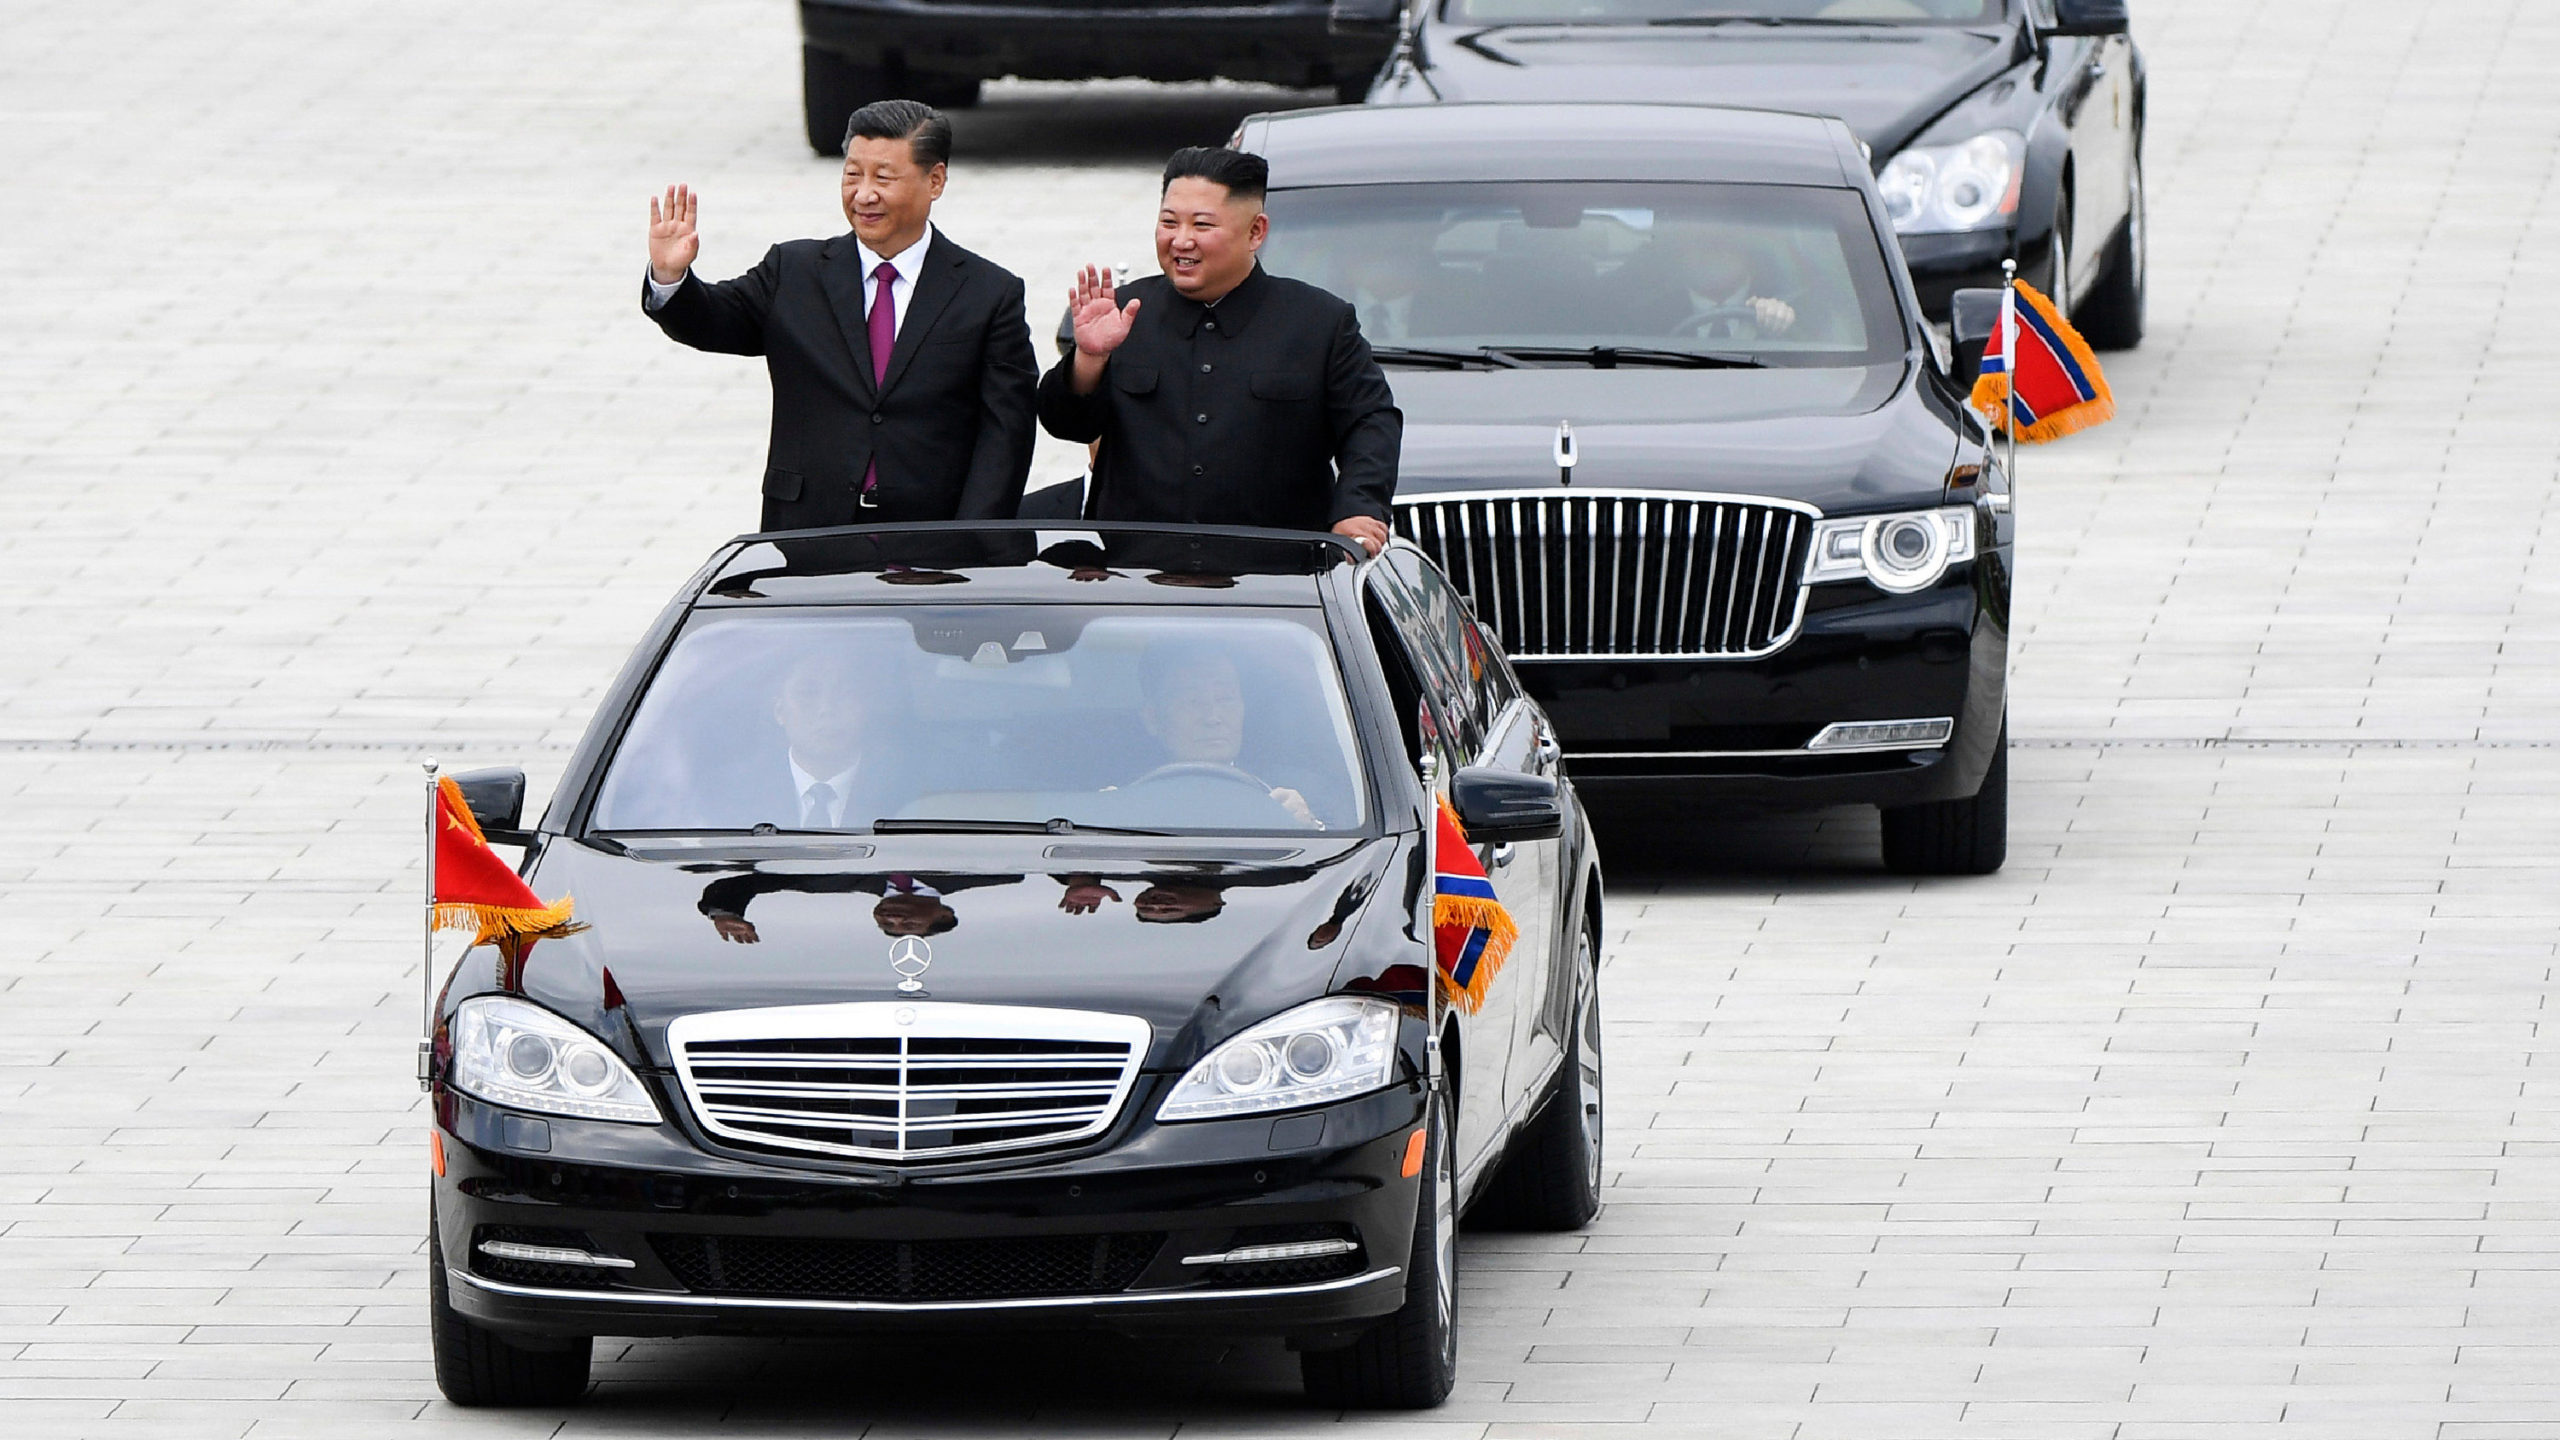 Armored Cars, Robots and Coal: North Korea Defies U.S. by Evading Sanctions